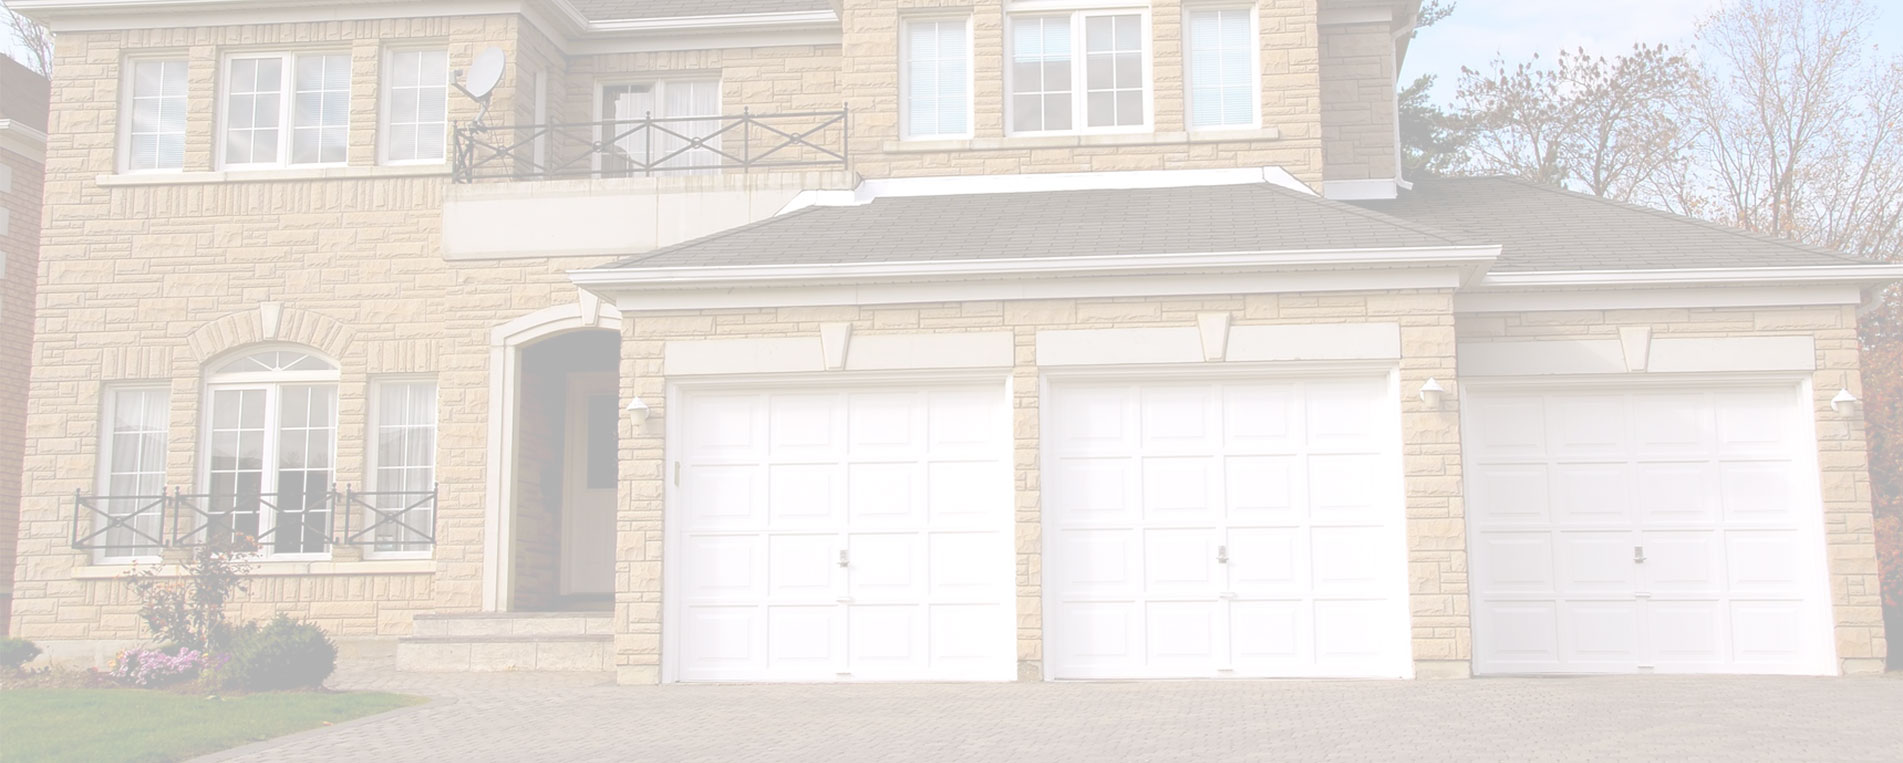 Garage Door Repair Katy, TX